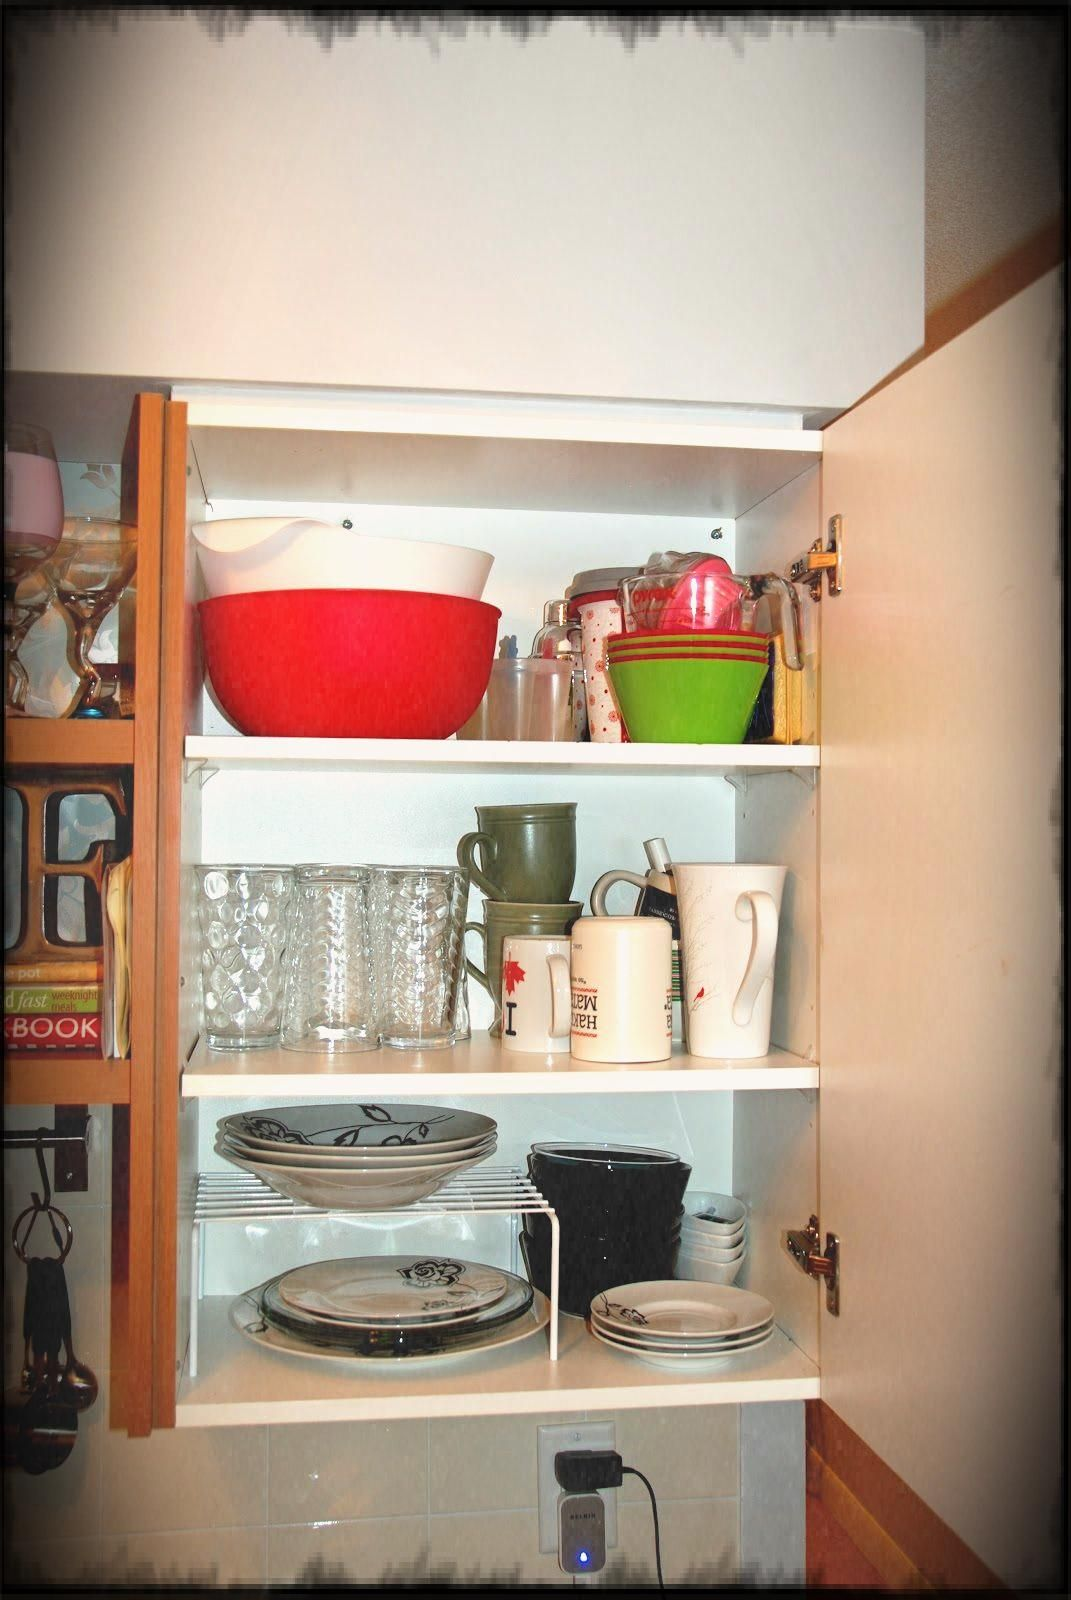 9 cheery enhancing concepts for tiny areas to earn your room feeling wider a kitchen on kitchen organization for small spaces id=32621